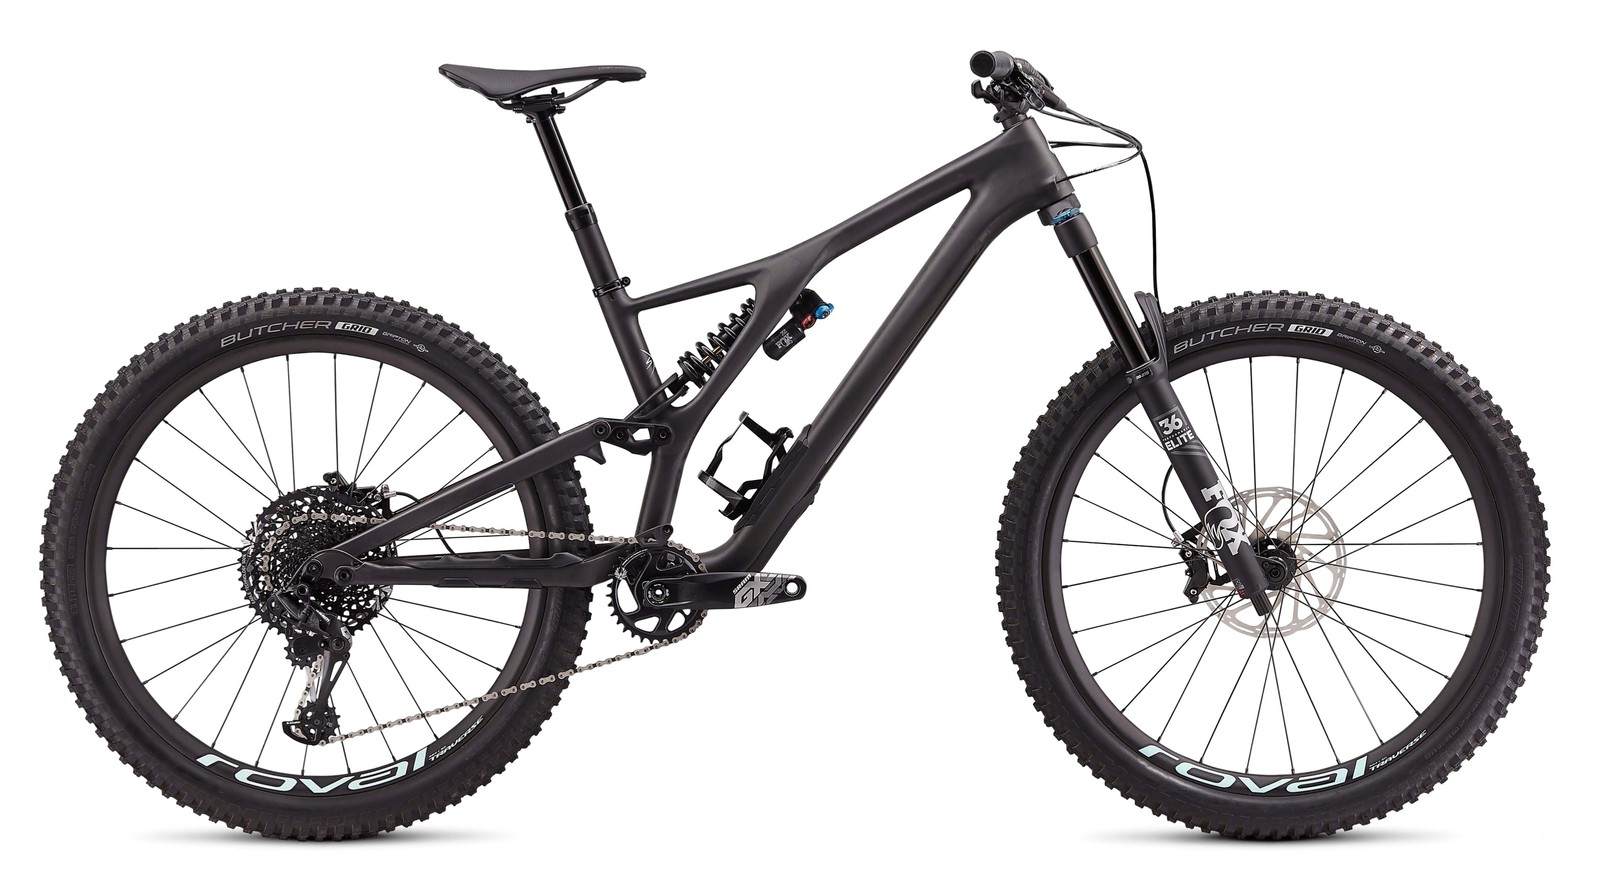 Specialized Announces Stumpjumper EVO Carbon